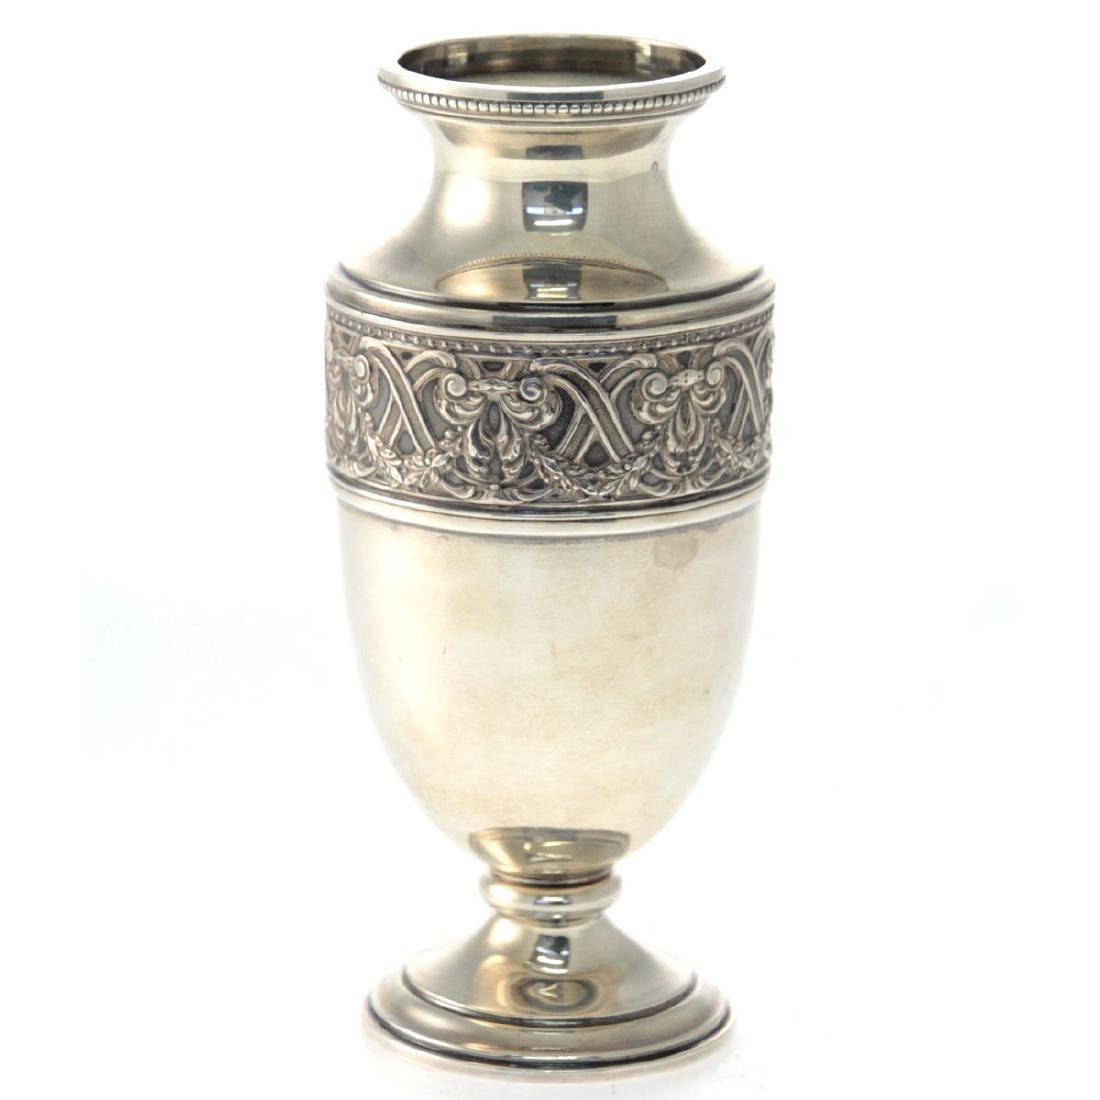 Olier & Caron French Sterling Silver Vase Paris 1910-36